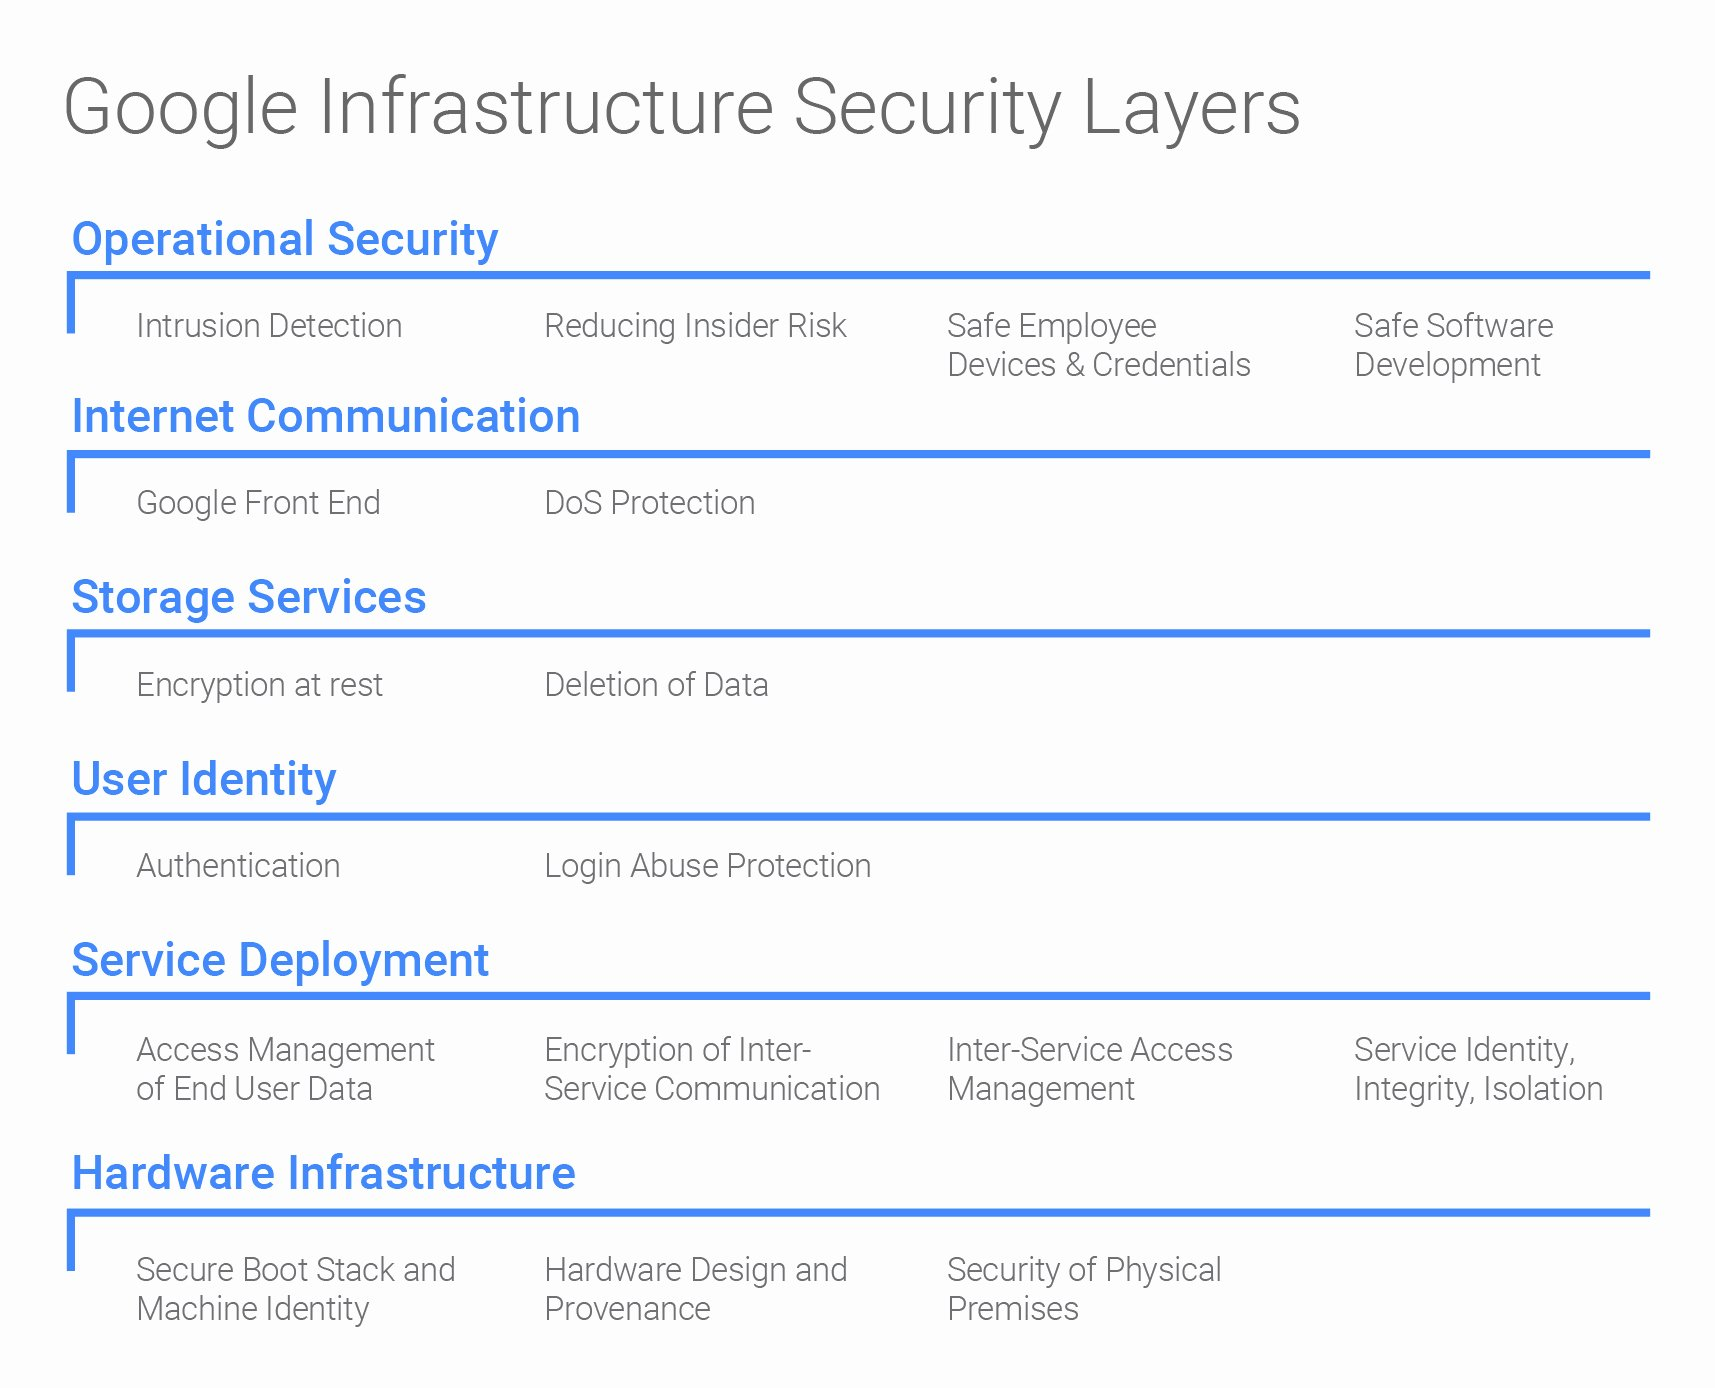 Physical Security Plan Template Inspirational Google Infrastructure Security Design Overview